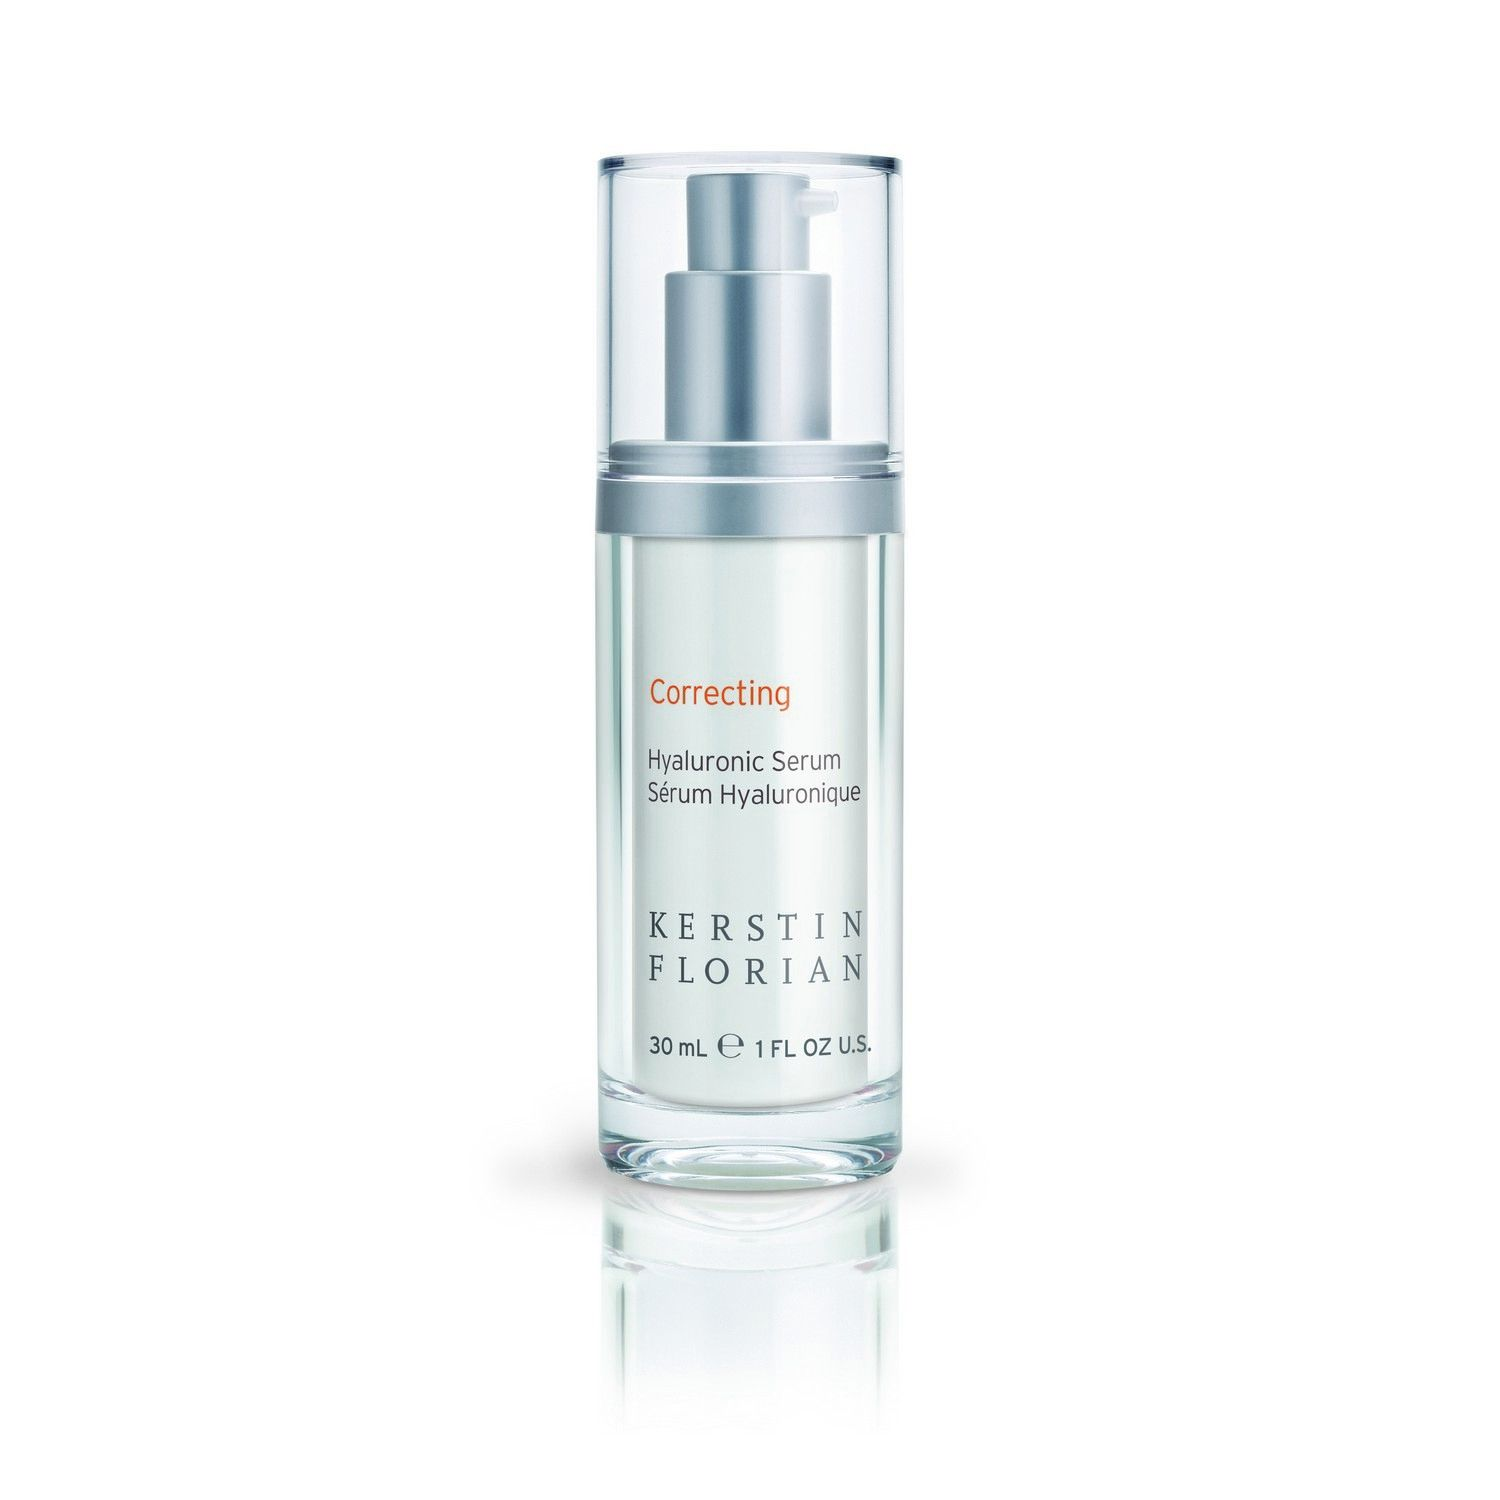 Kerstin Florian Correcting Hyaluronic Serum (30 ml / 1.0 fl oz)